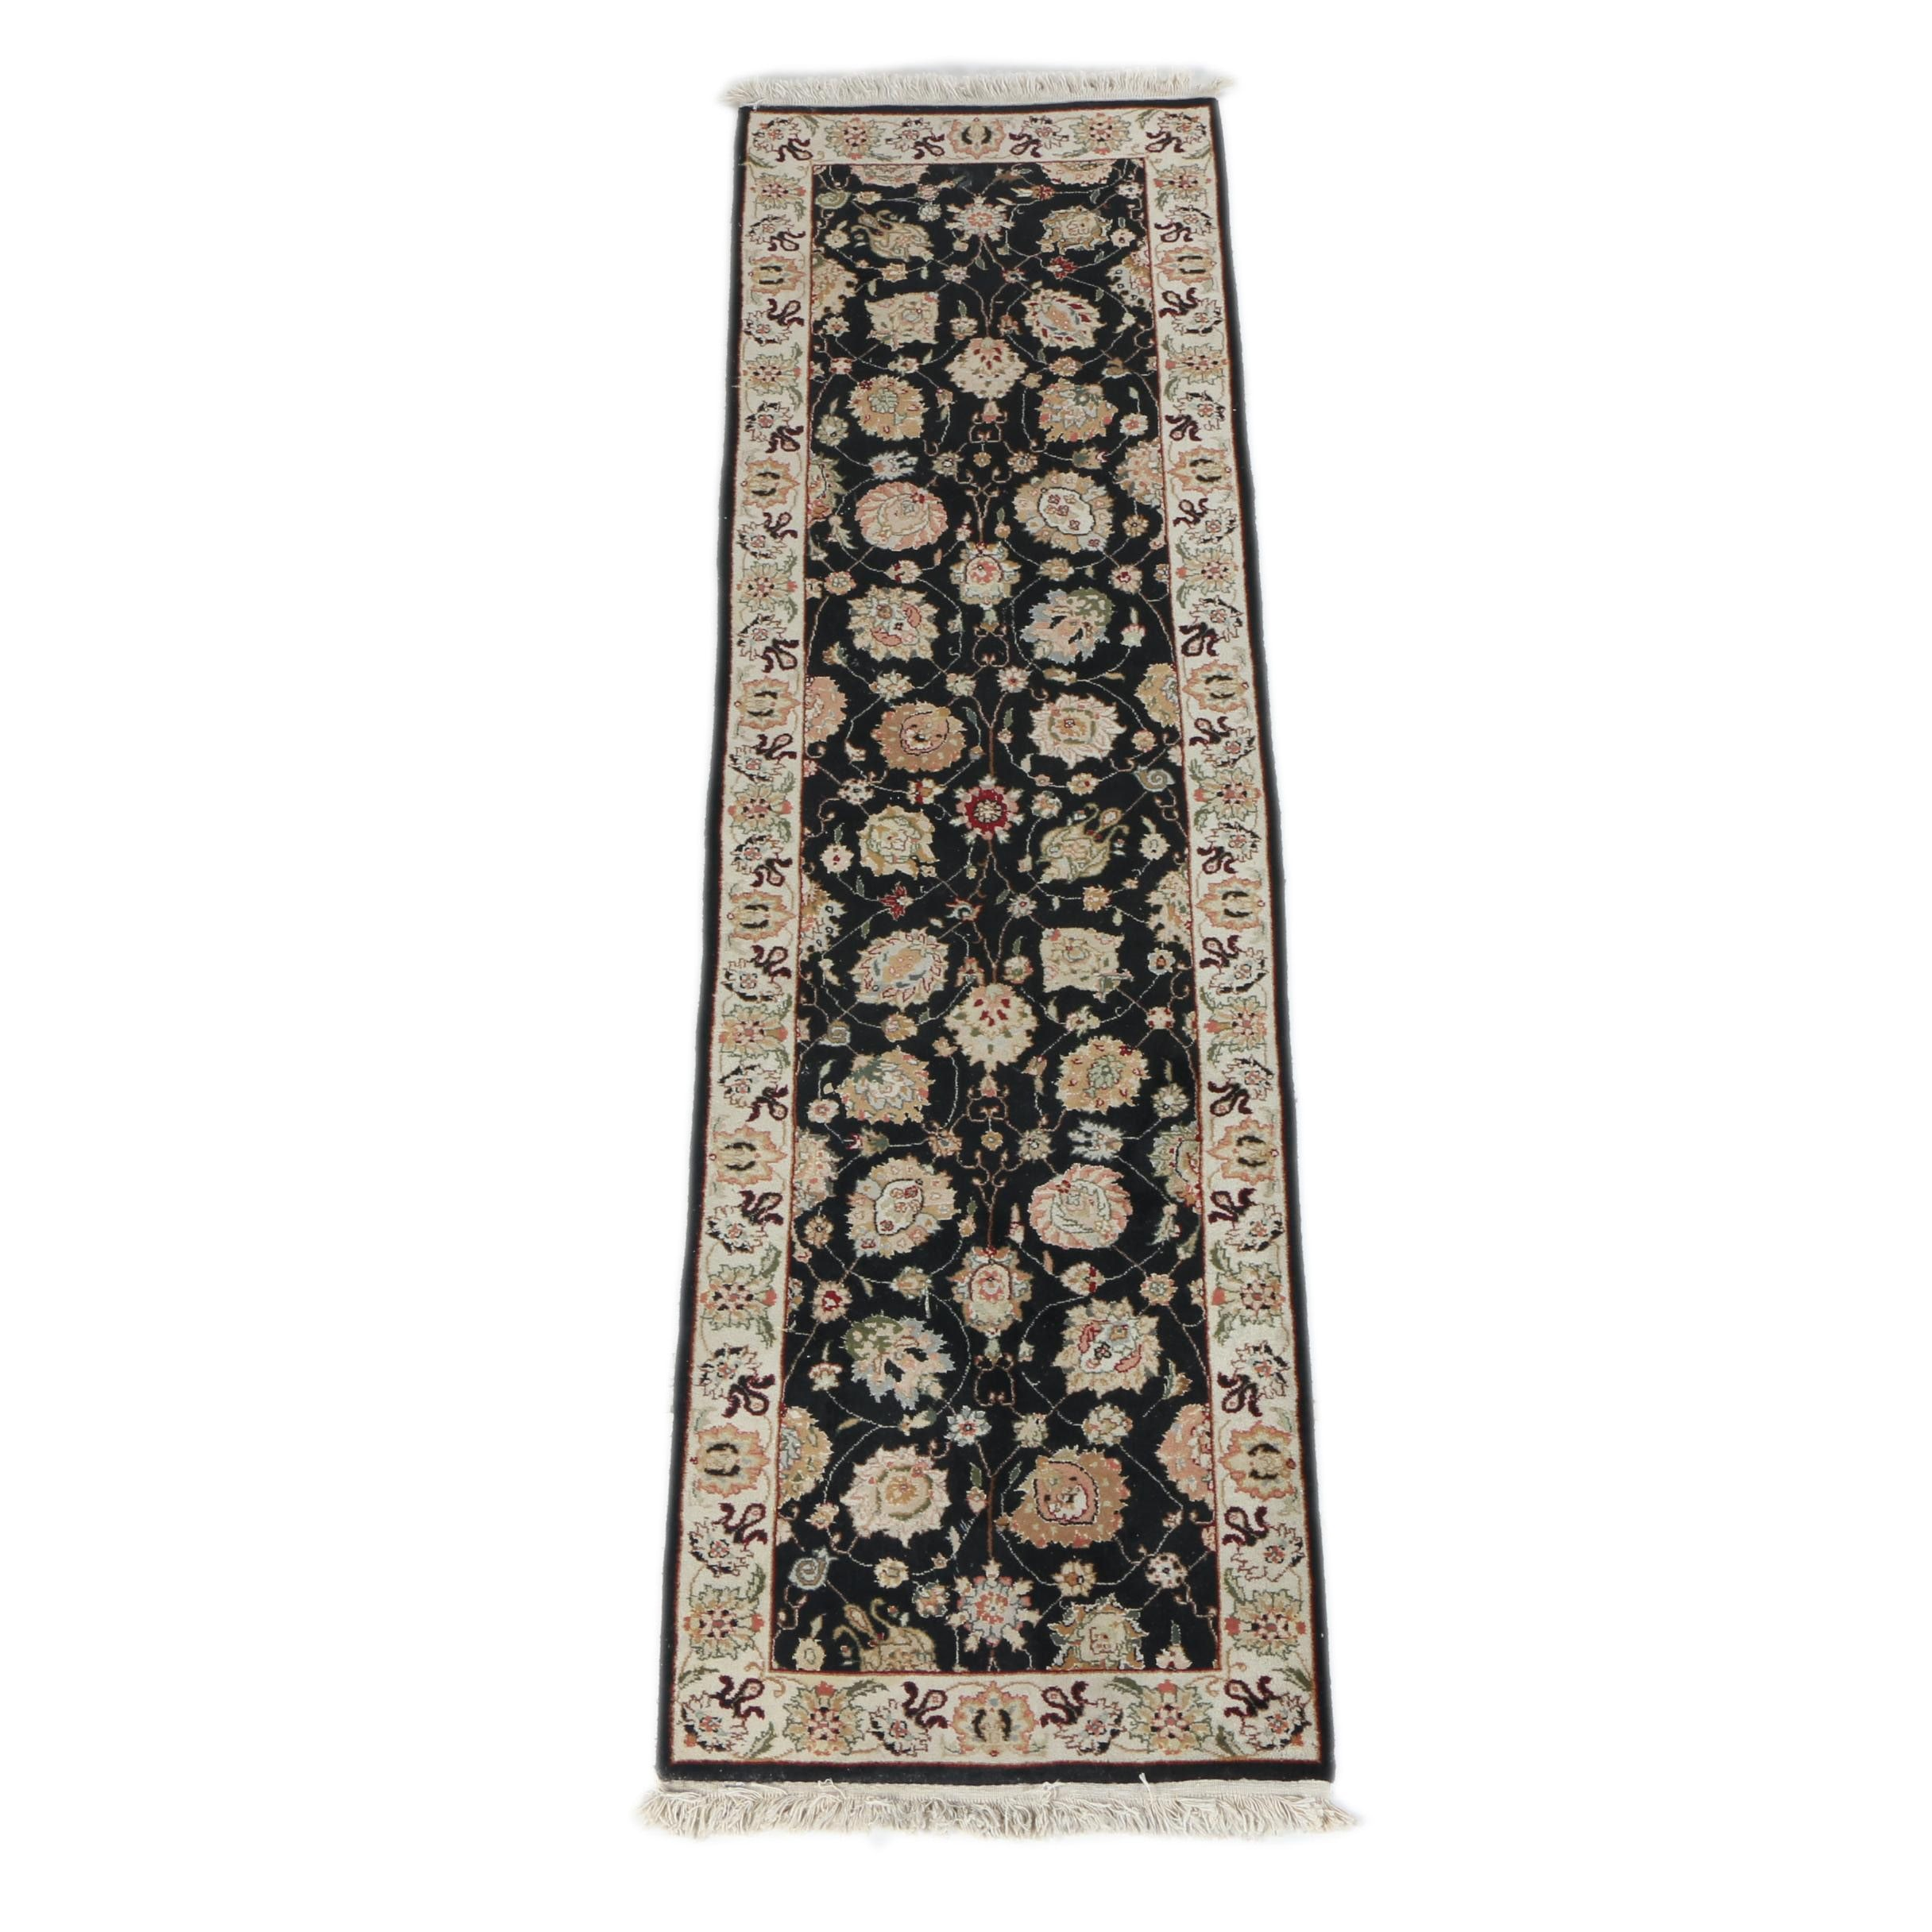 Hand-Knotted Indian Agra Style Wool Carpet Runner